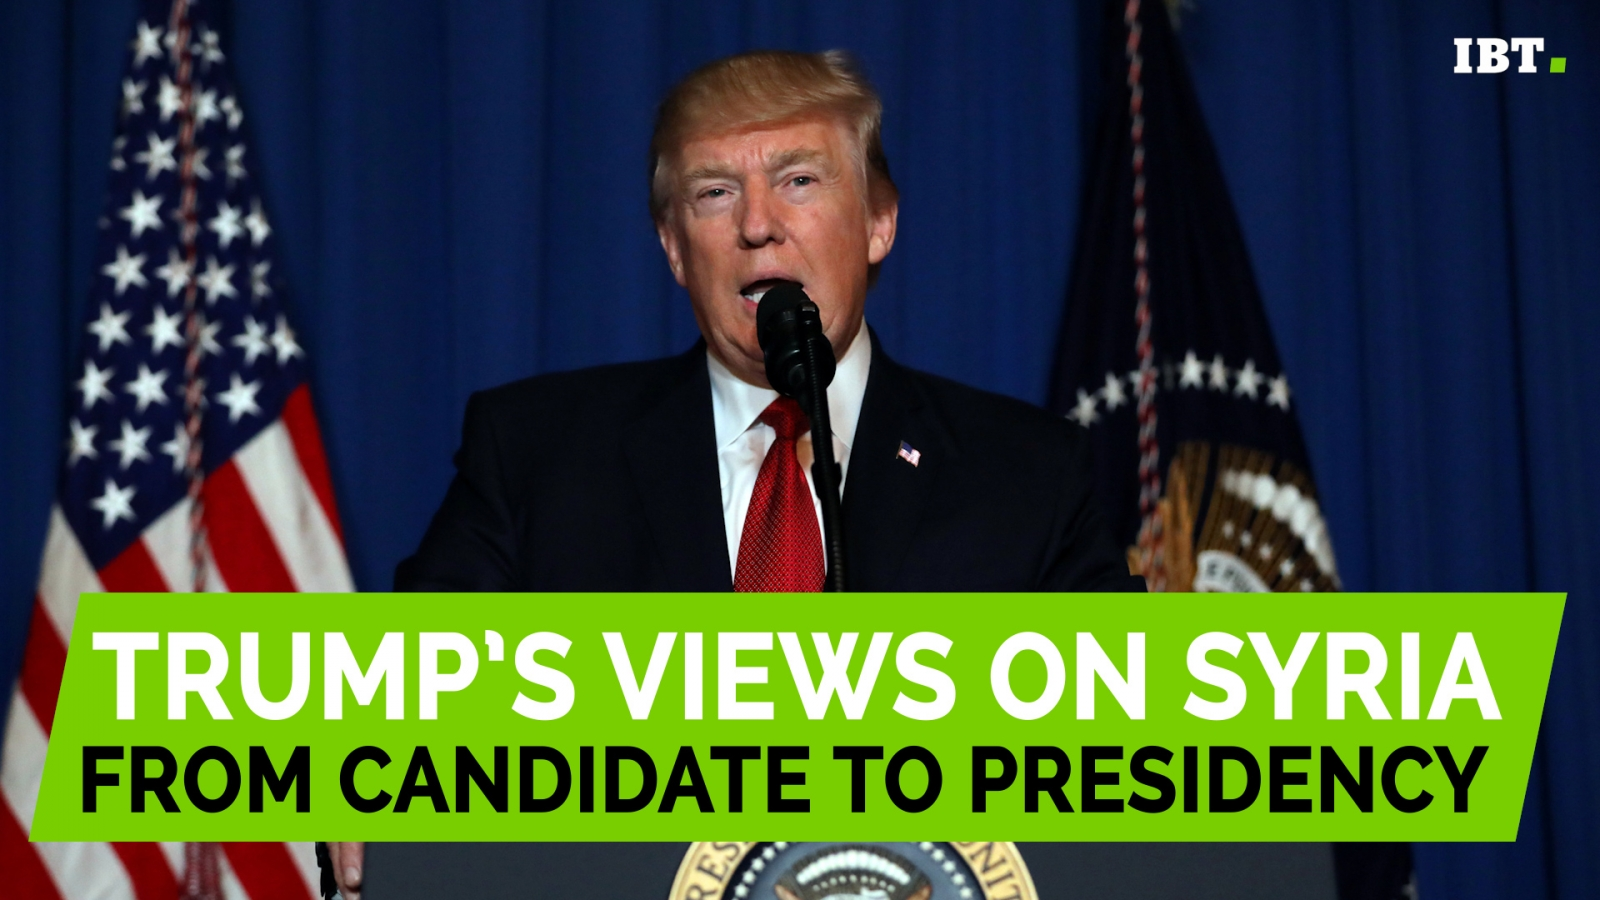 trump-statements-on-syria-have-evolved-from-candidate-to-presidency